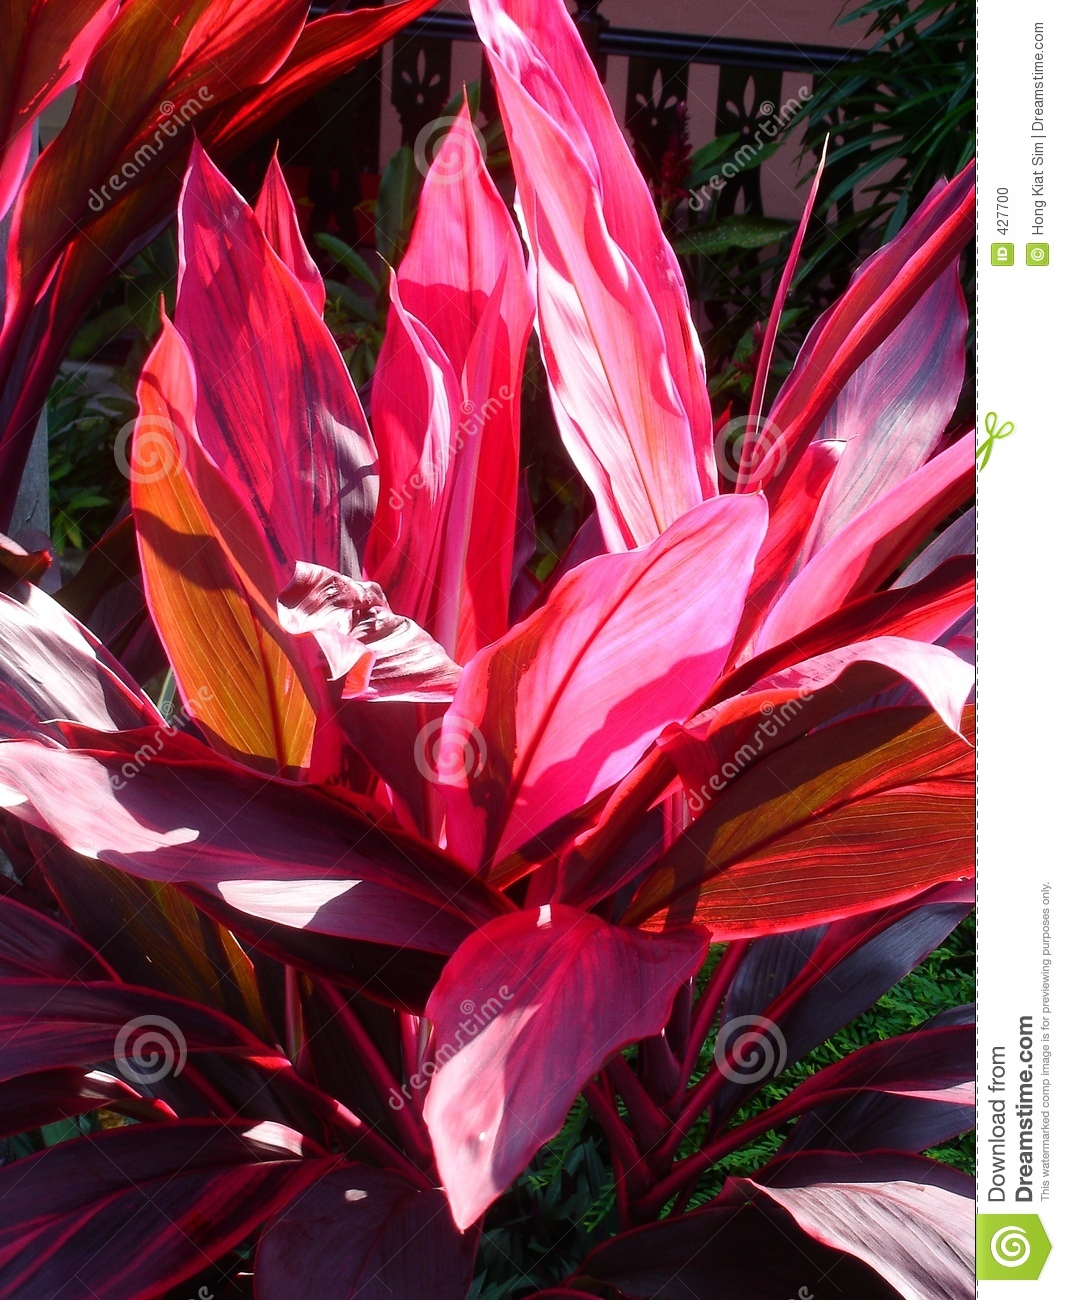 astonishing red leaves stock photo  image, Natural flower